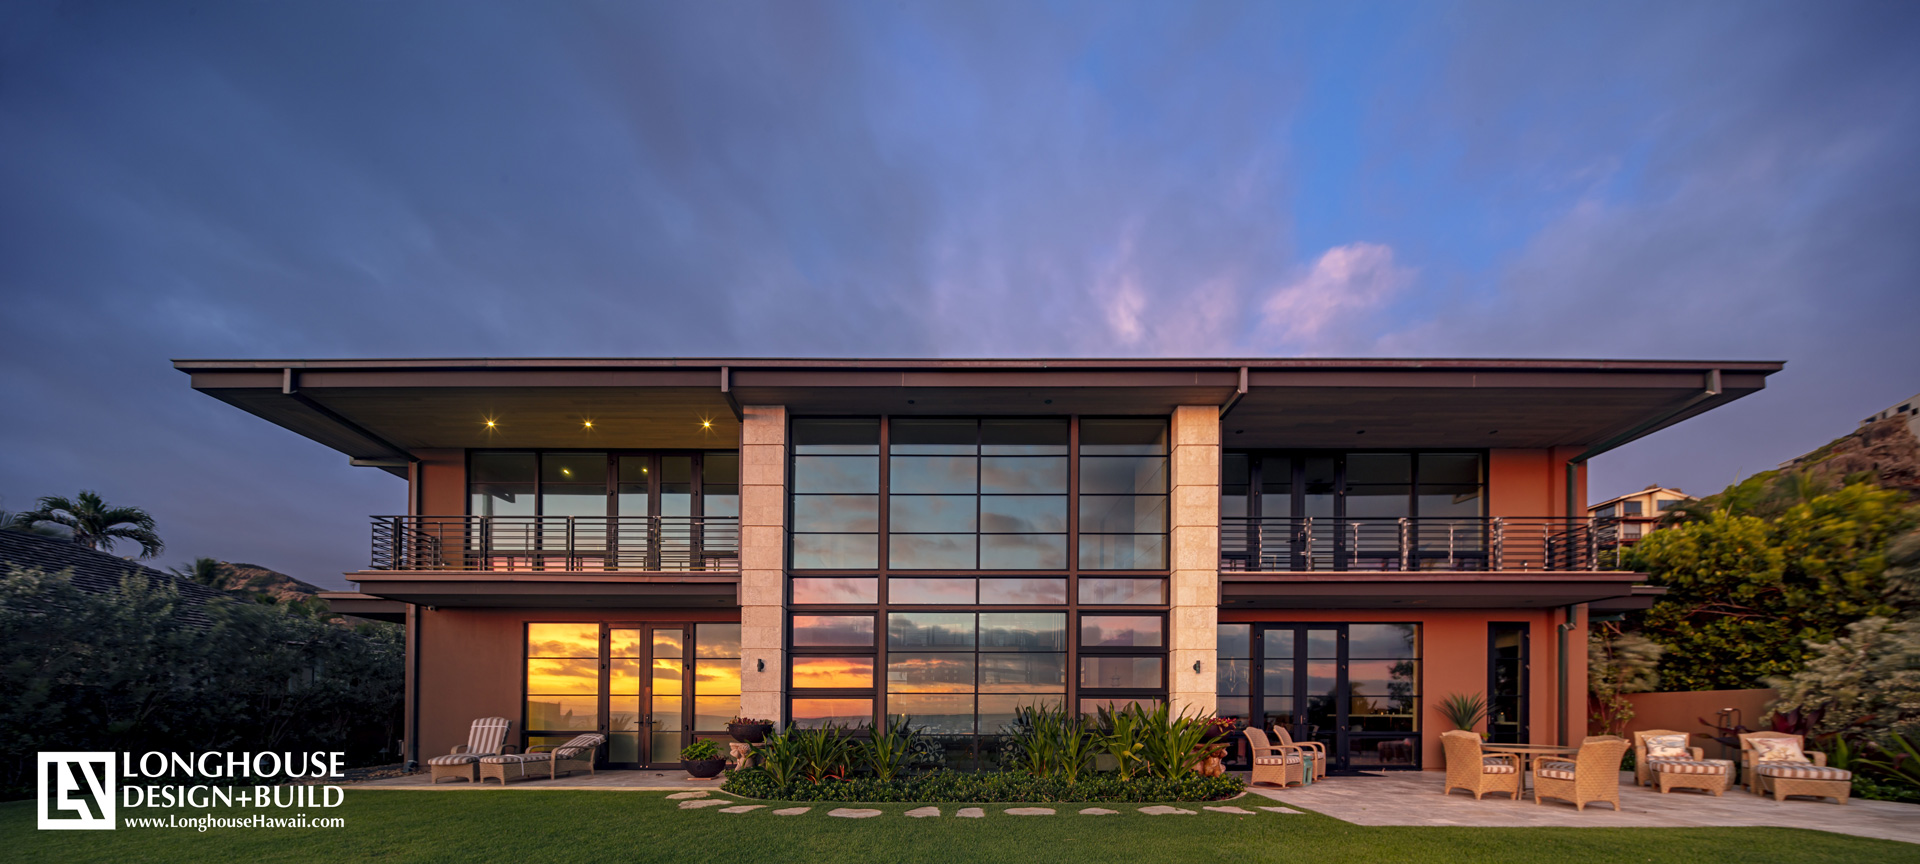 Hawaiian Sunrise Lanikai Ocean Front Island Resort Style Home with contemporary metal window and door frames Jeff Long